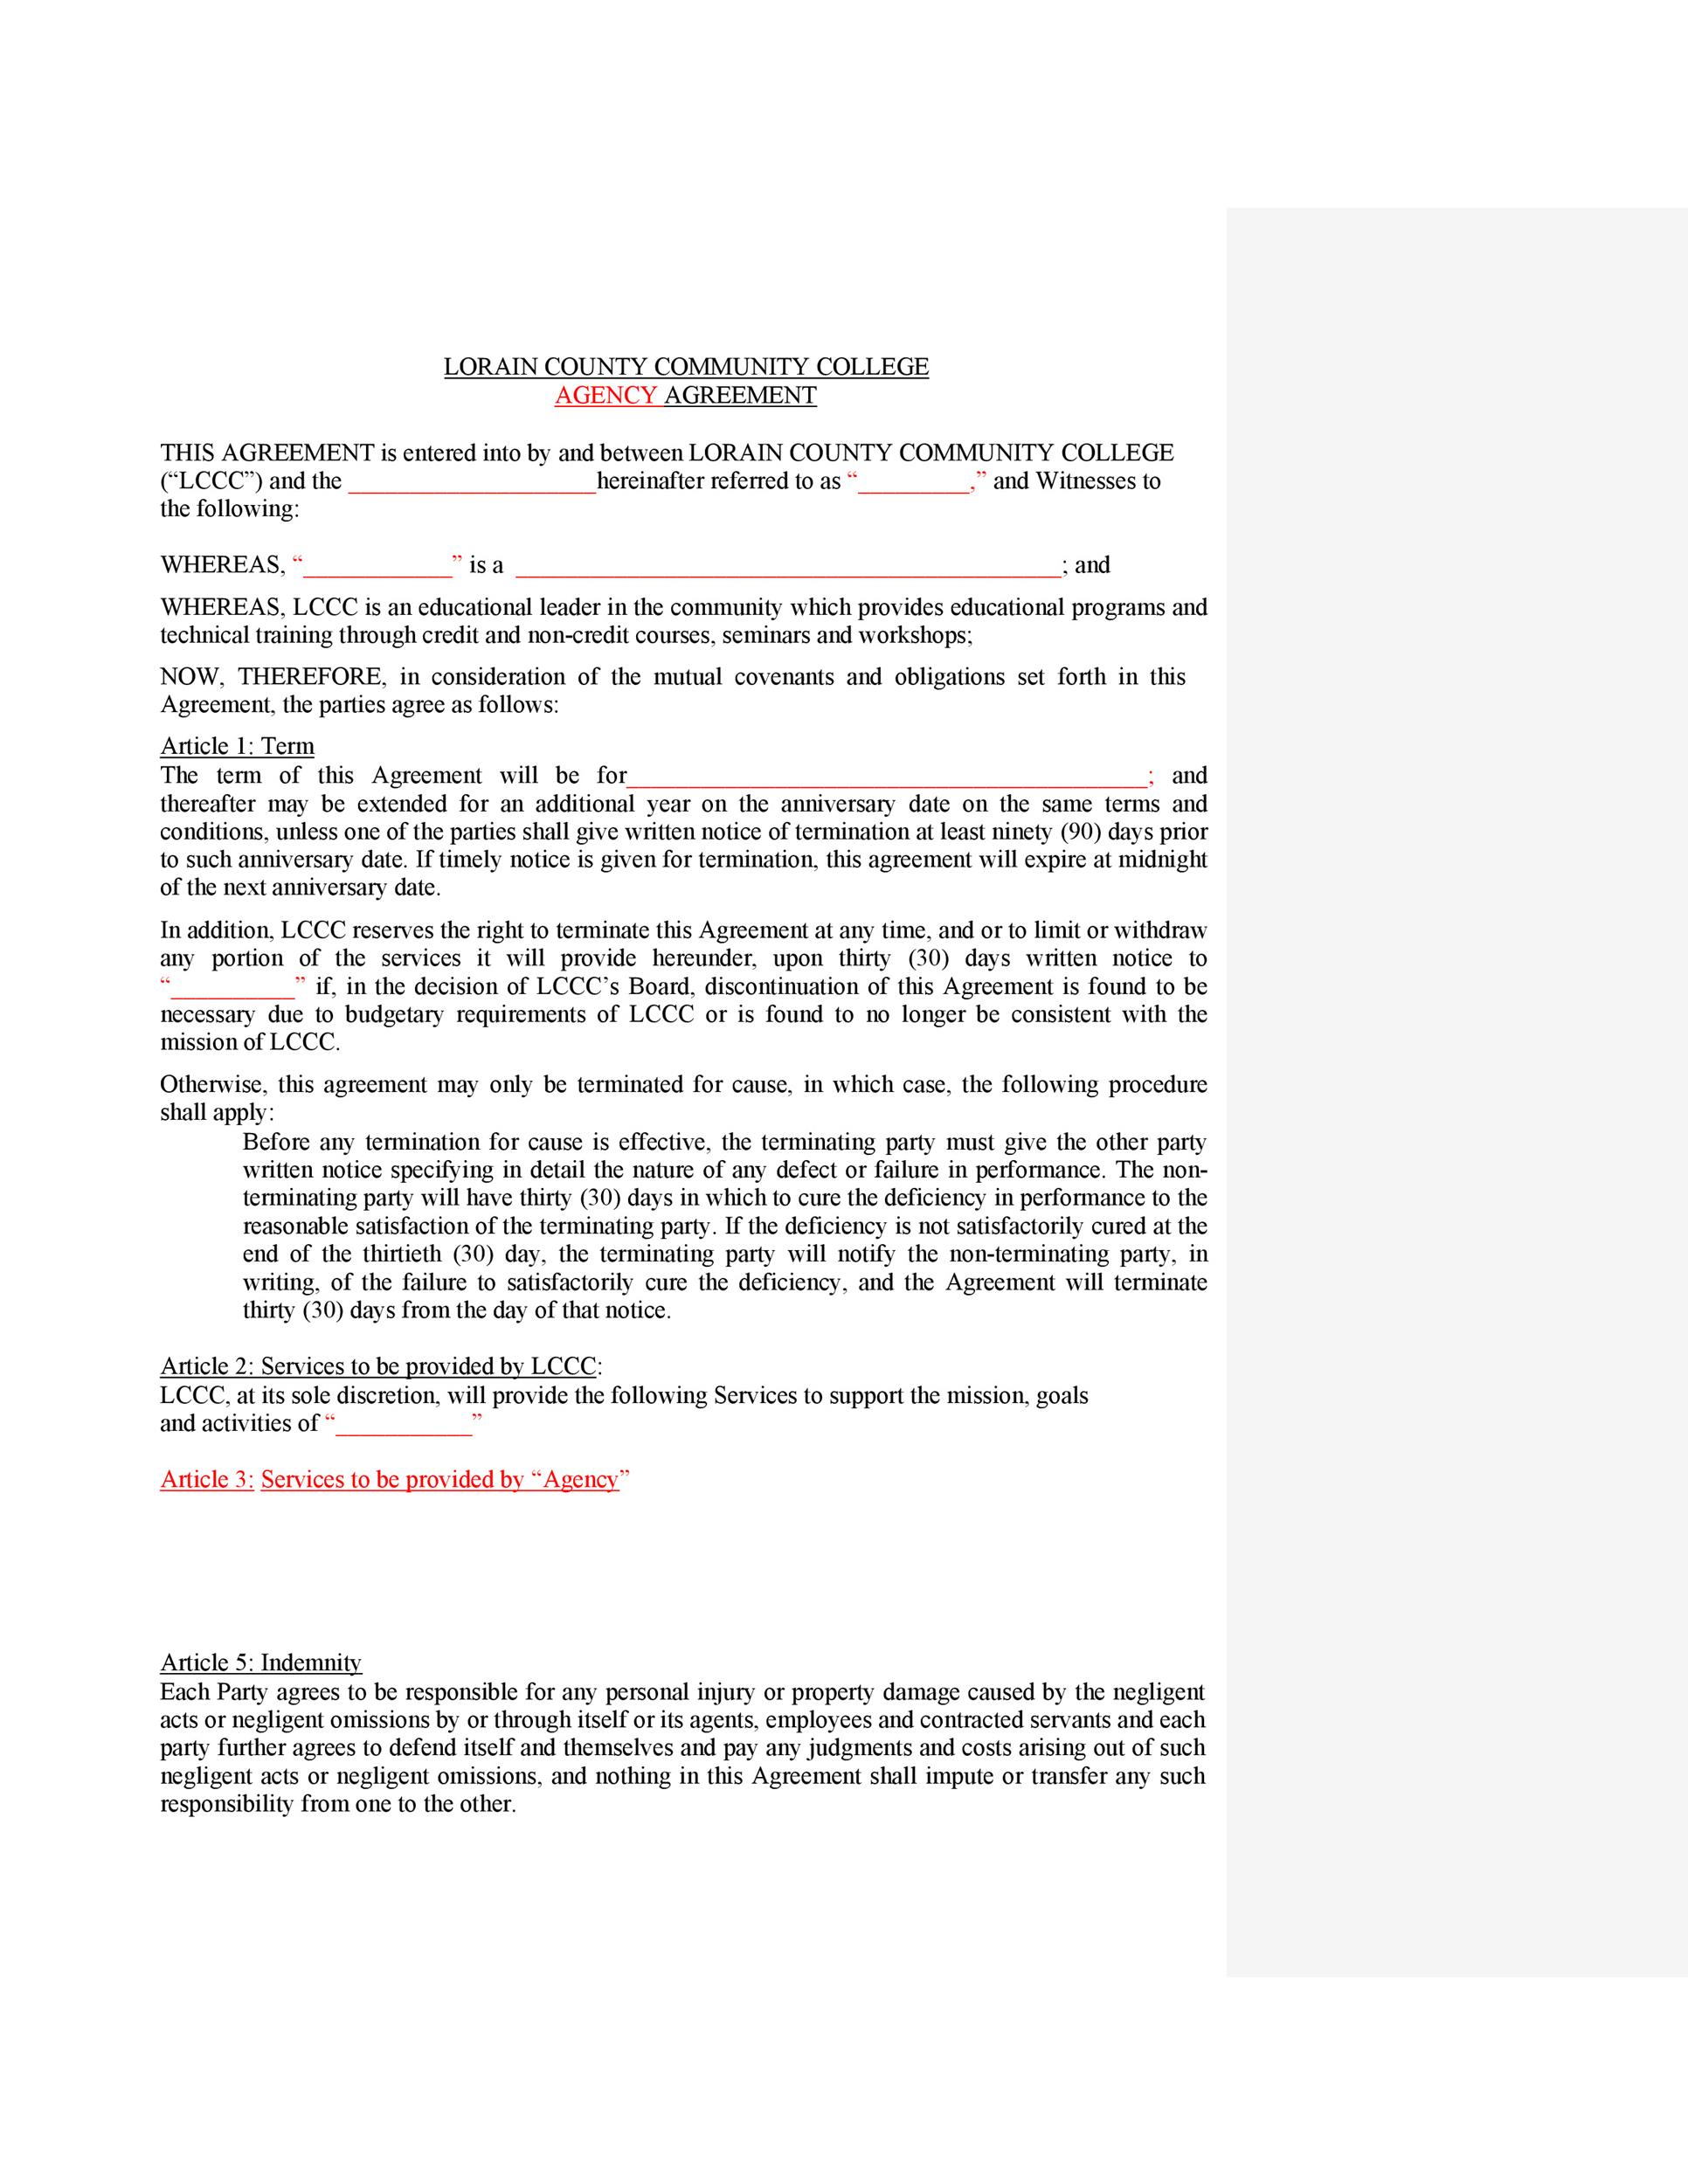 Free agency agreement 04